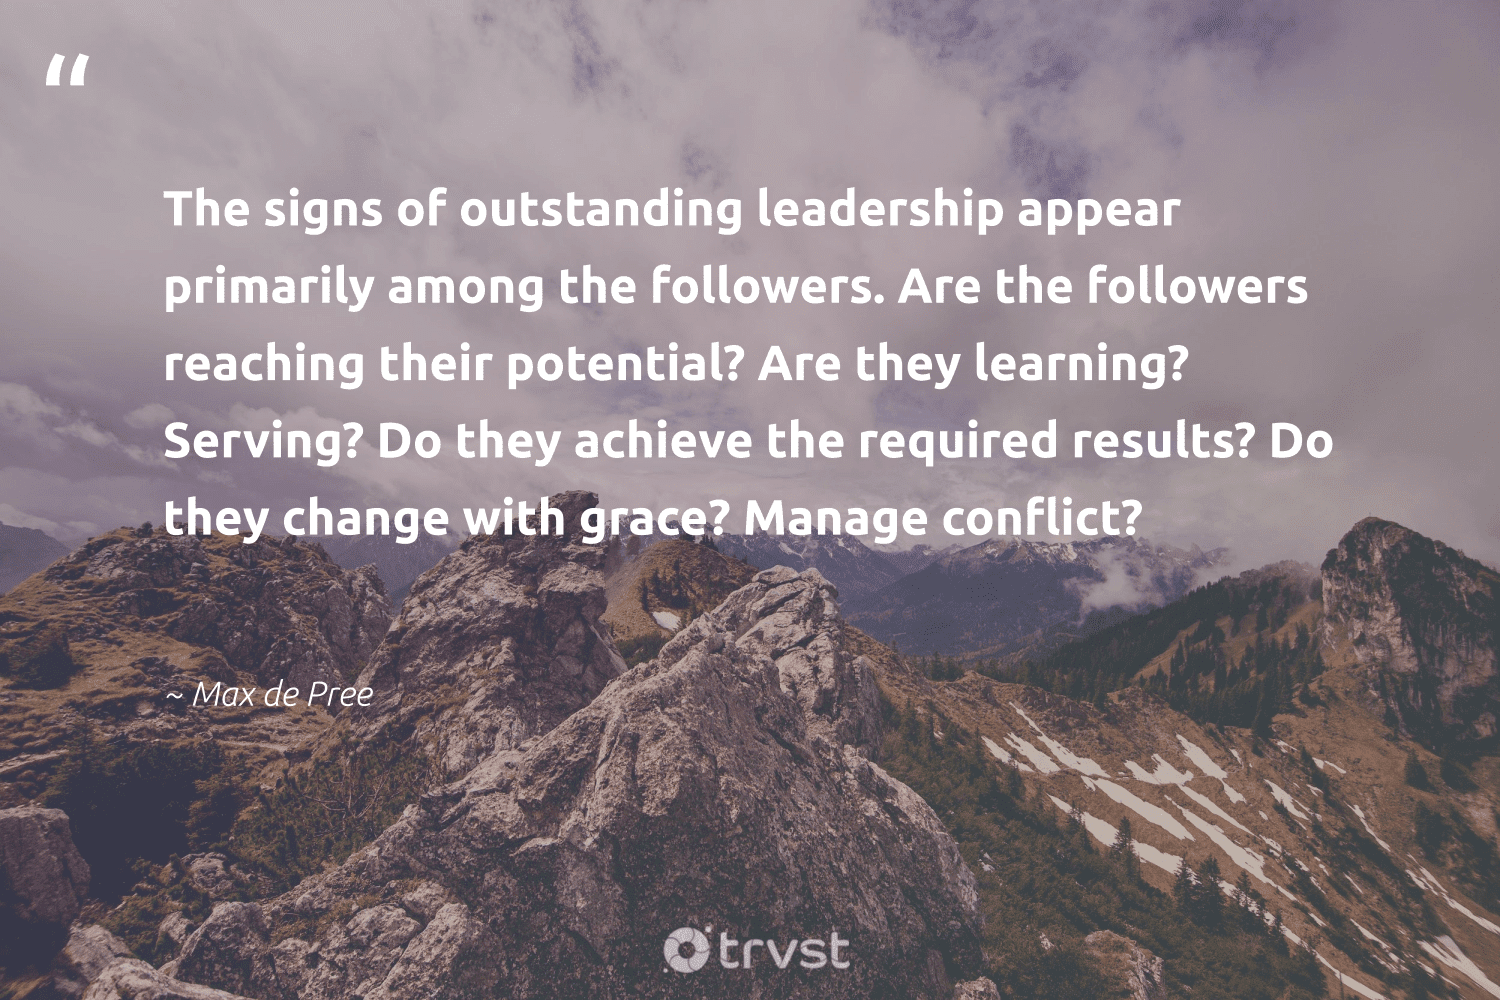 """The signs of outstanding leadership appear primarily among the followers. Are the followers reaching their potential? Are they learning? Serving? Do they achieve the required results? Do they change with grace? Manage conflict?""  - Max de Pree #trvst #quotes #leadership #results #leadershipdevelopment #nevergiveup #softskills #beinspired #leadershipqualities #futureofwork #begreat #changetheworld"